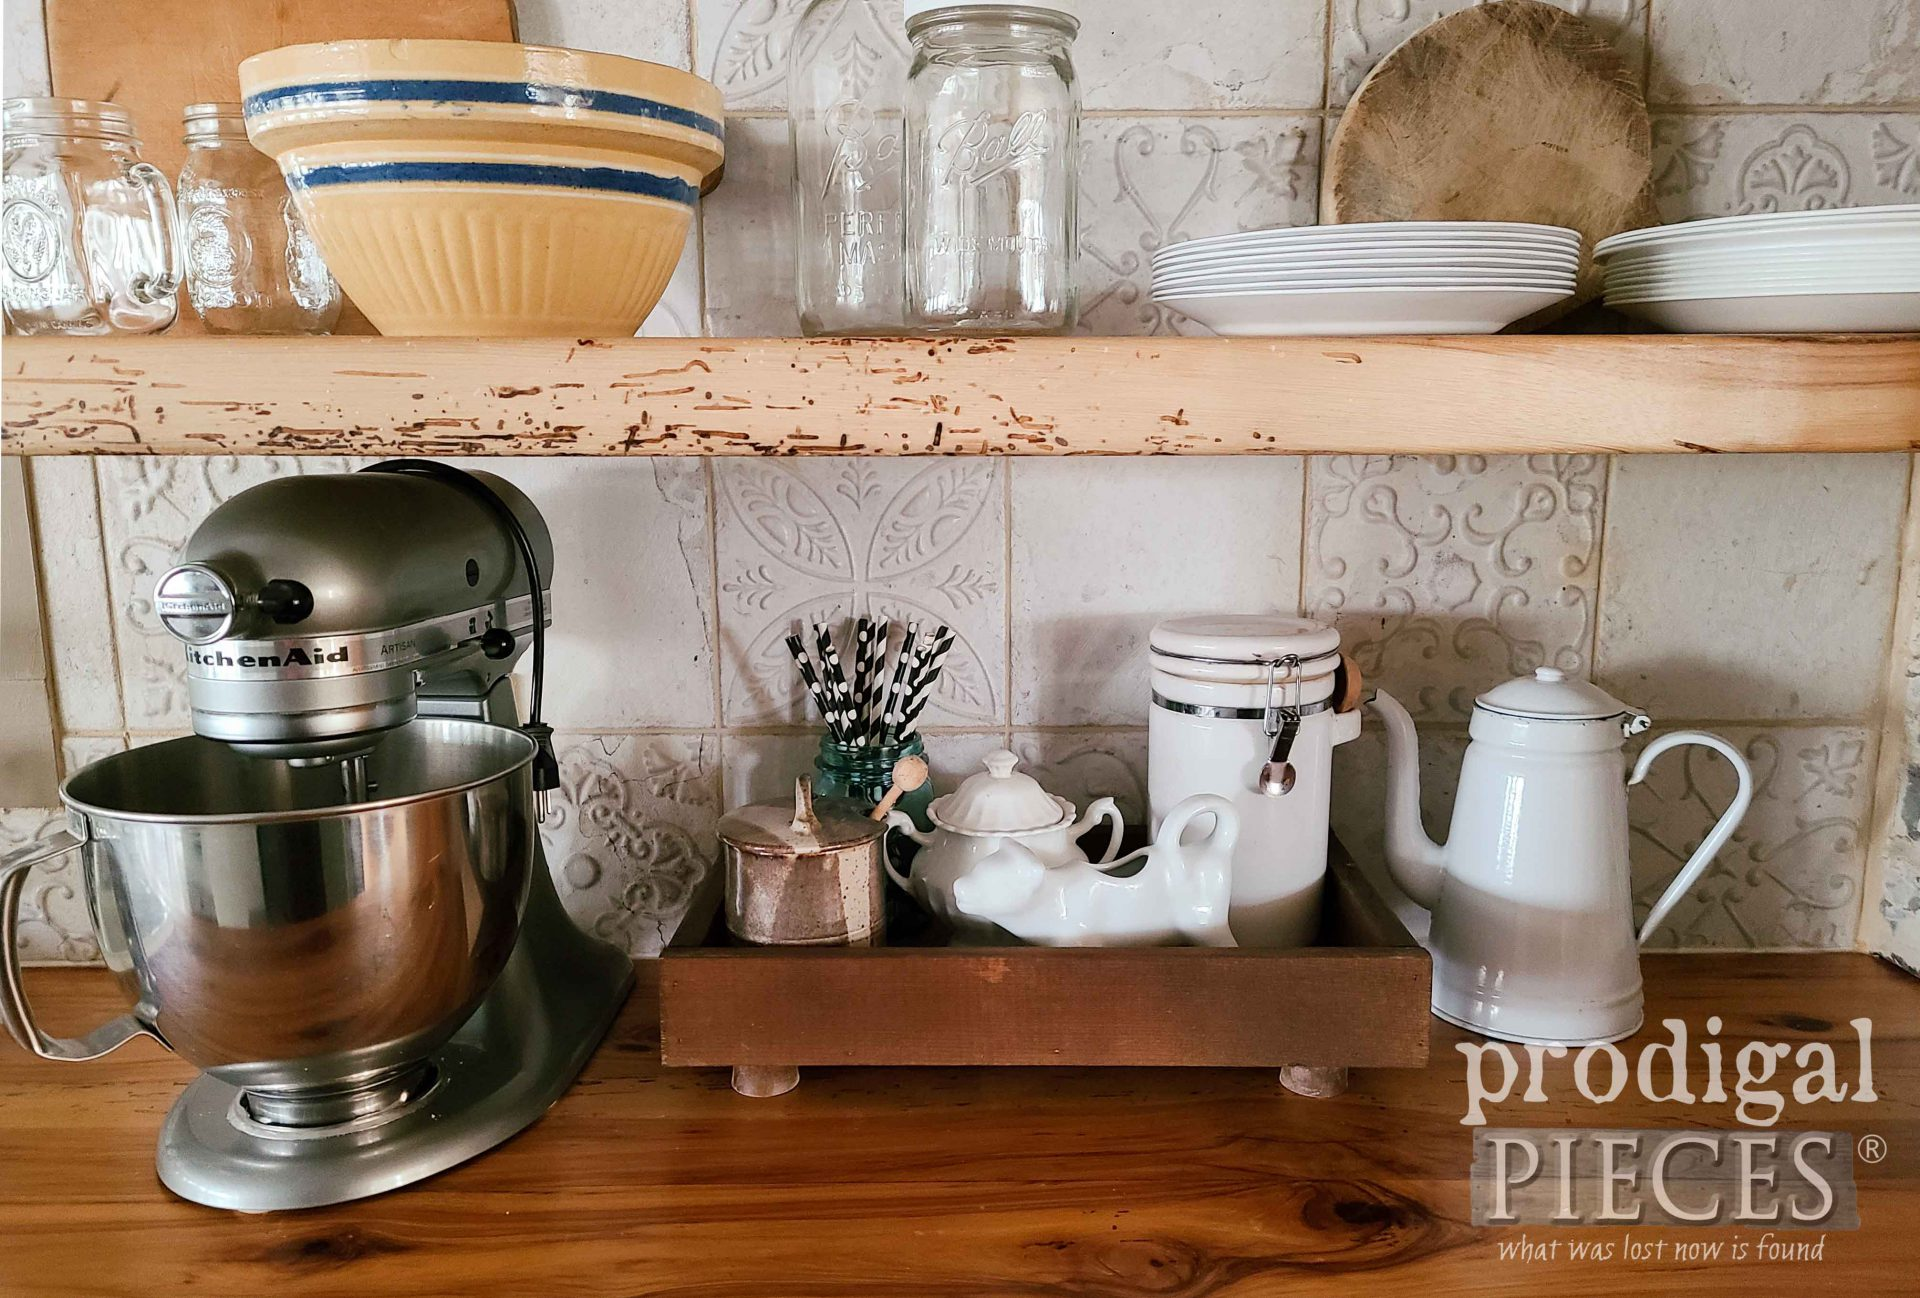 DIY Wood Slat Farmhouse Tray for Kitchen, Bath, Bedroom and more | prodigalpieces.com #prodigalpieces #diy #home #farmhouse #kitchen #homedecor